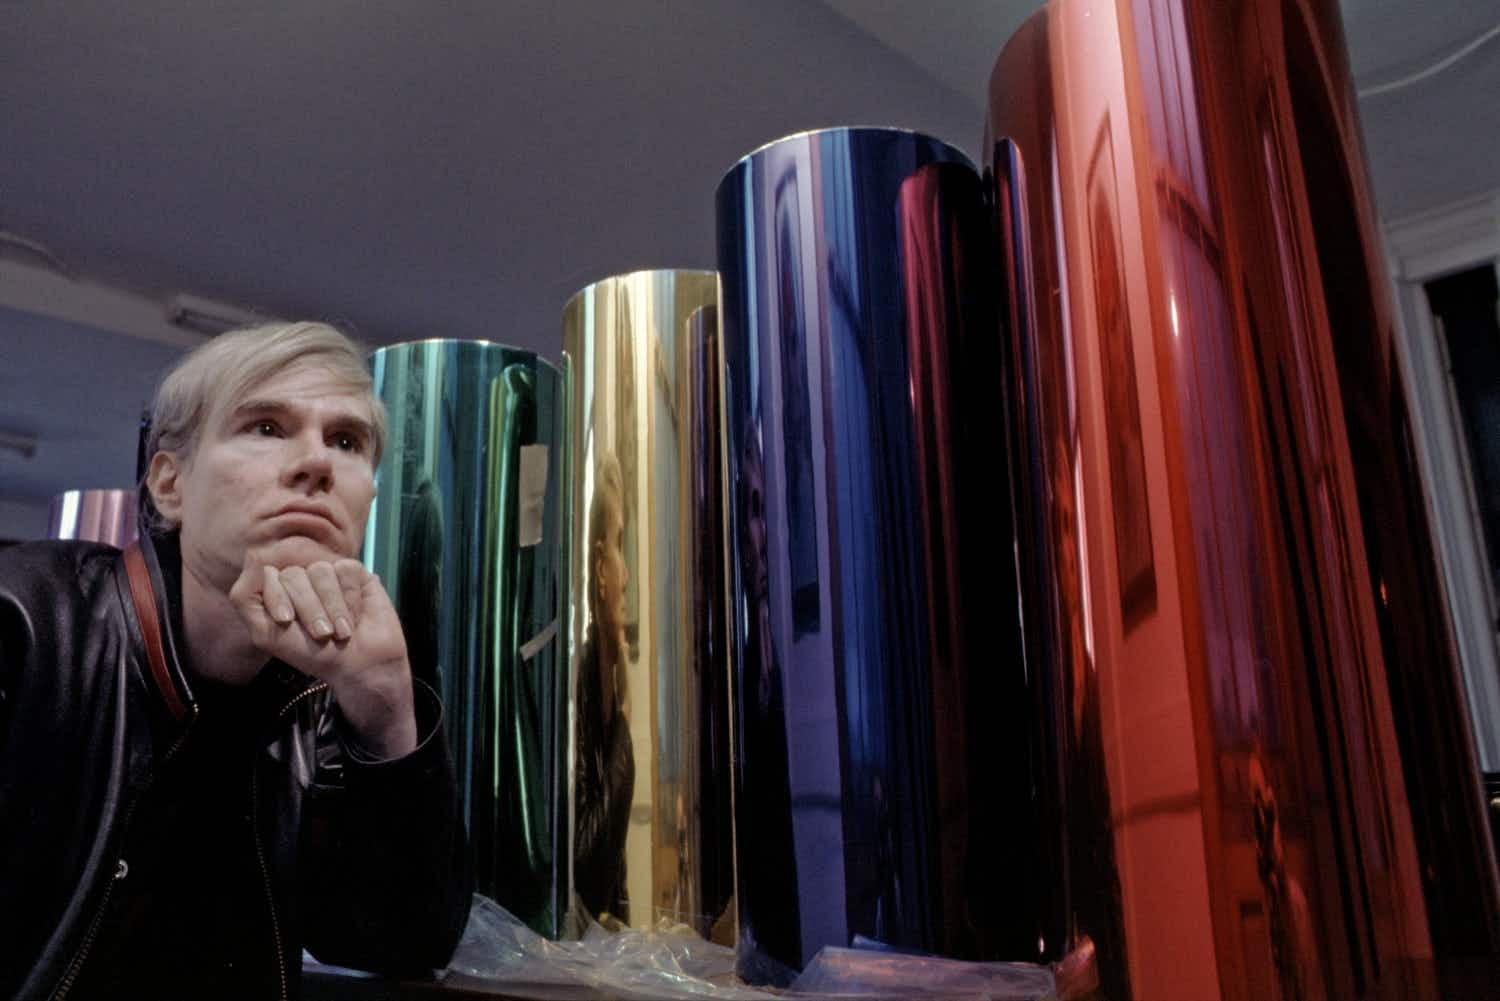 An incredible trove of Andy Warhol's photographic contact sheets is going on display in California